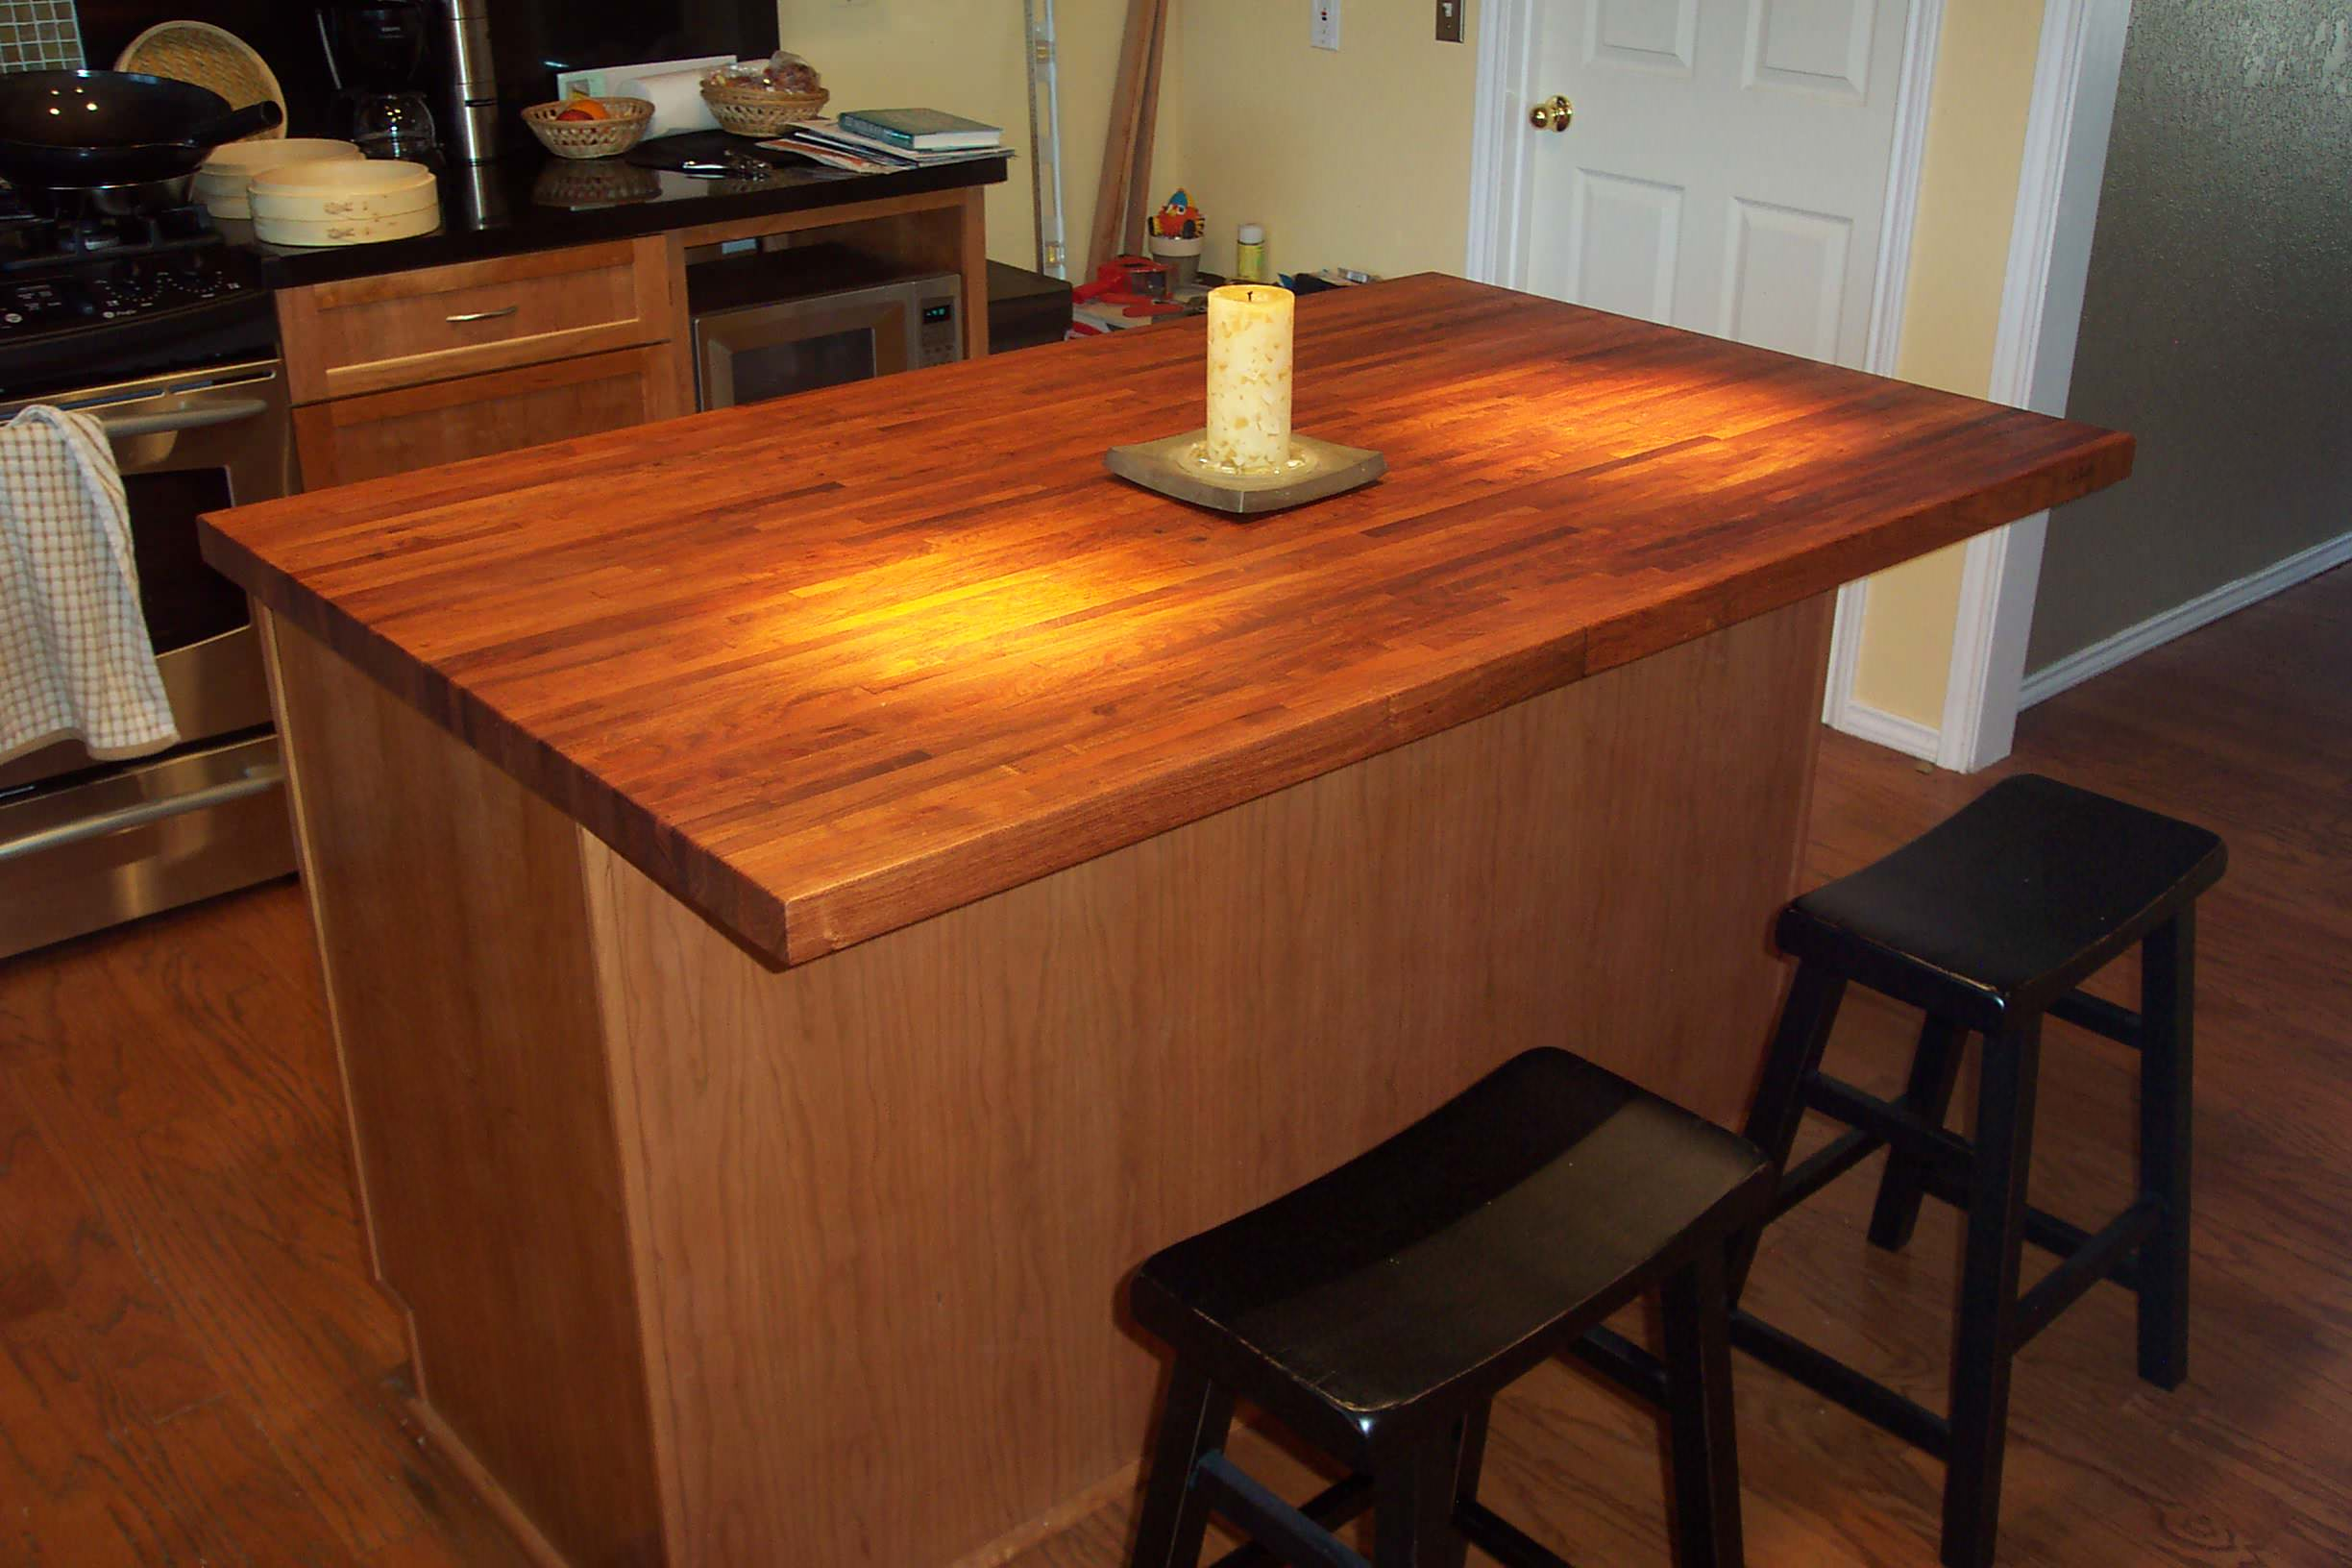 Mesquite Edge Grain Wood Center Island